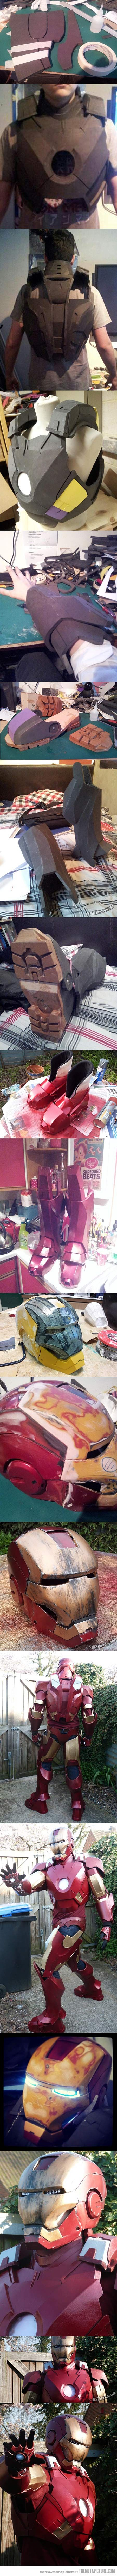 112 Best Stuff I Wanna Make Images On Pinterest Iron Man Repulsor Fx Circuit V24 Light Sound Effects For Your Suit From Scratch